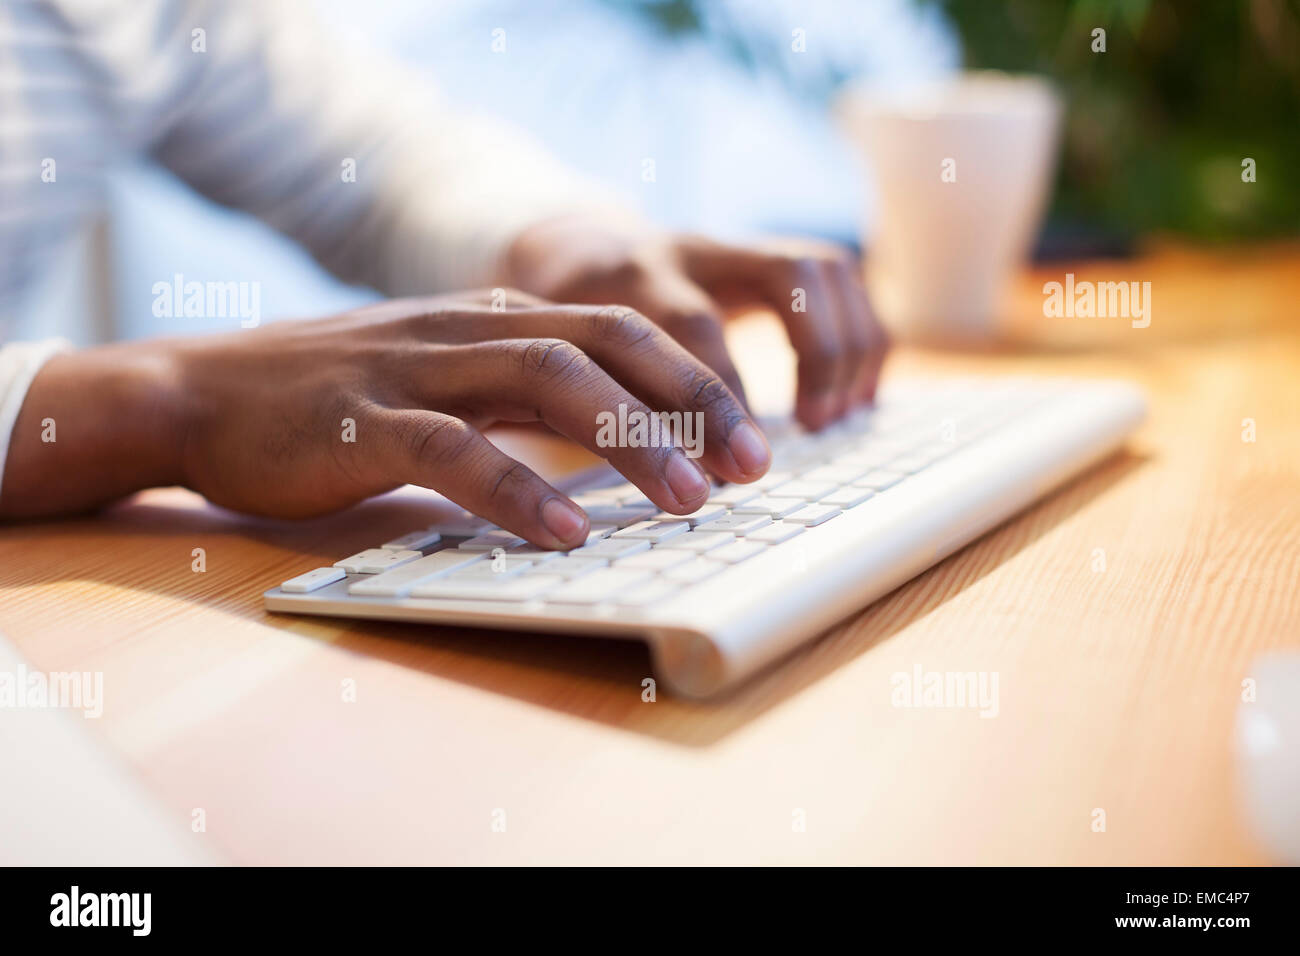 Man's hands typing on computer keyboard - Stock Image